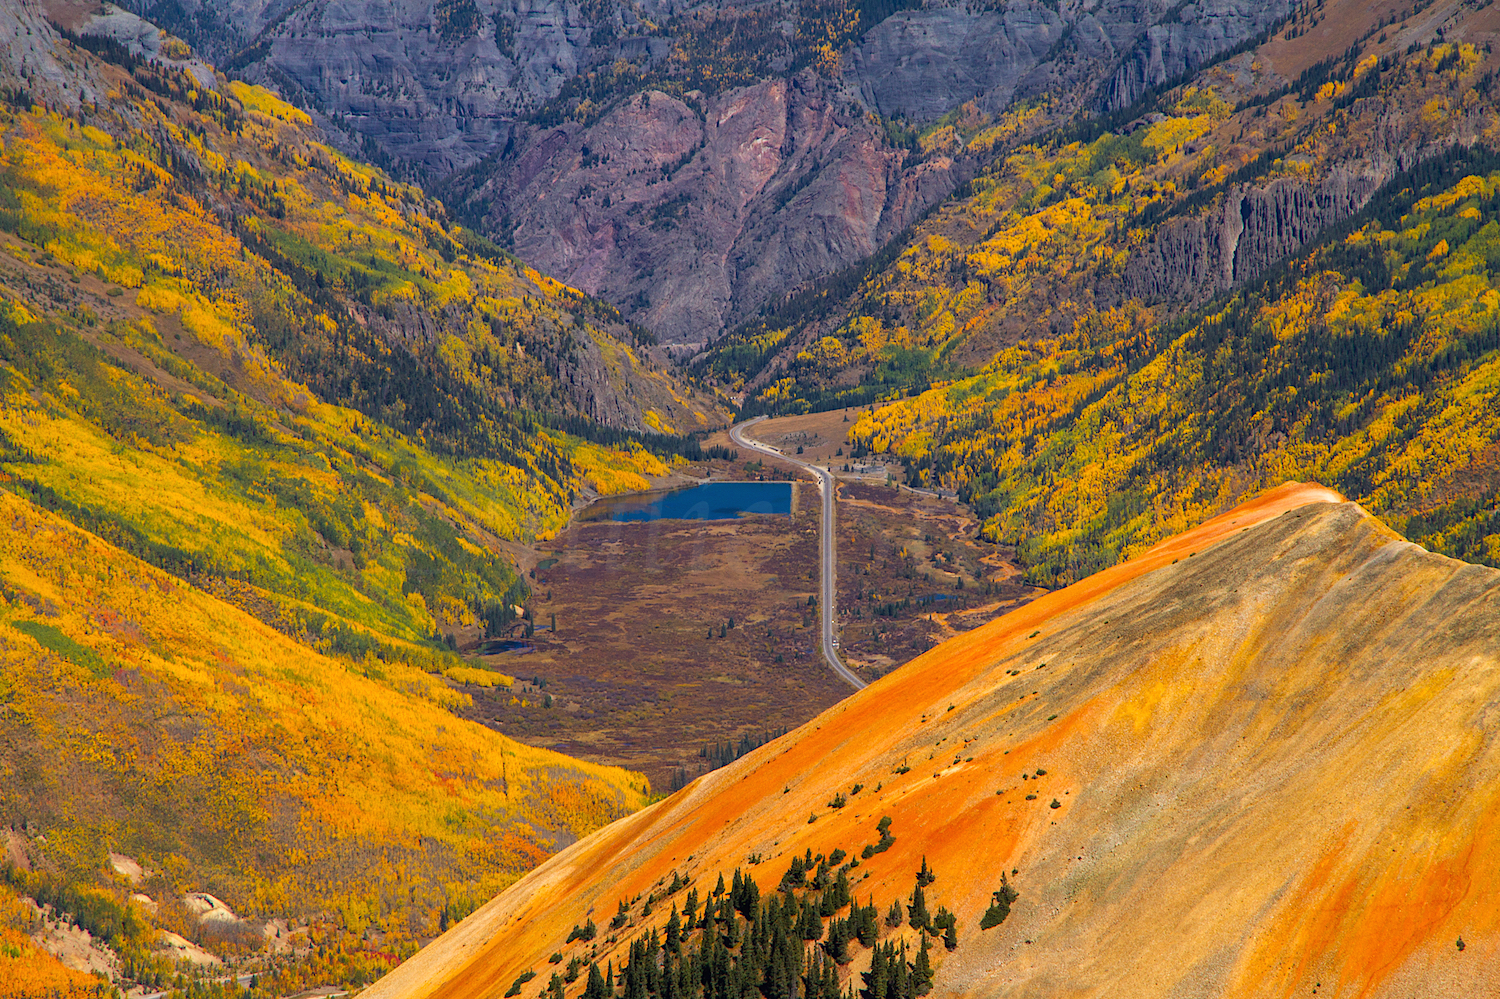 Red Mountain #3, Image #1550